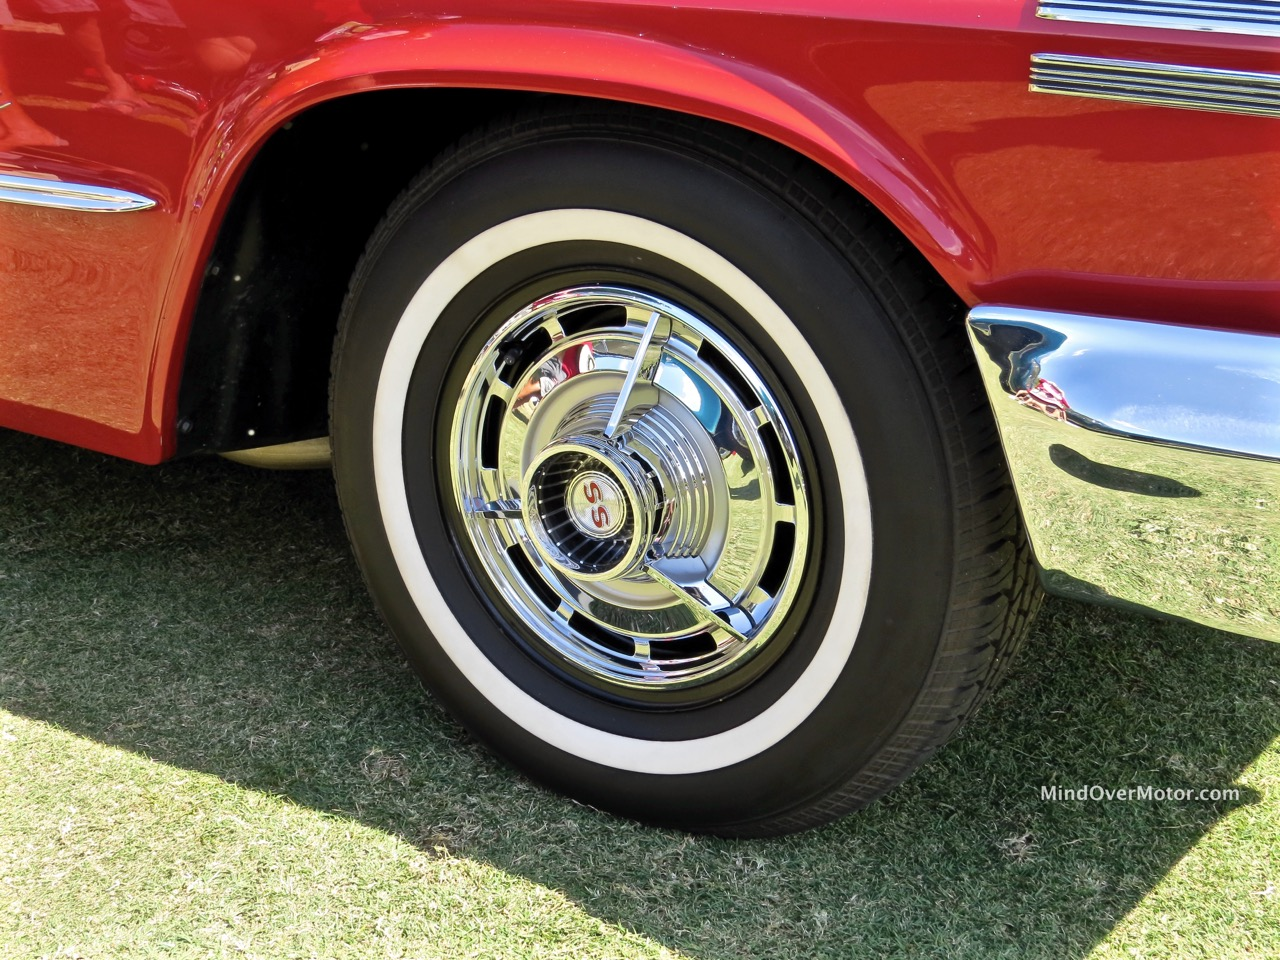 1963 Chevrolet Impala SS Wheel Cover